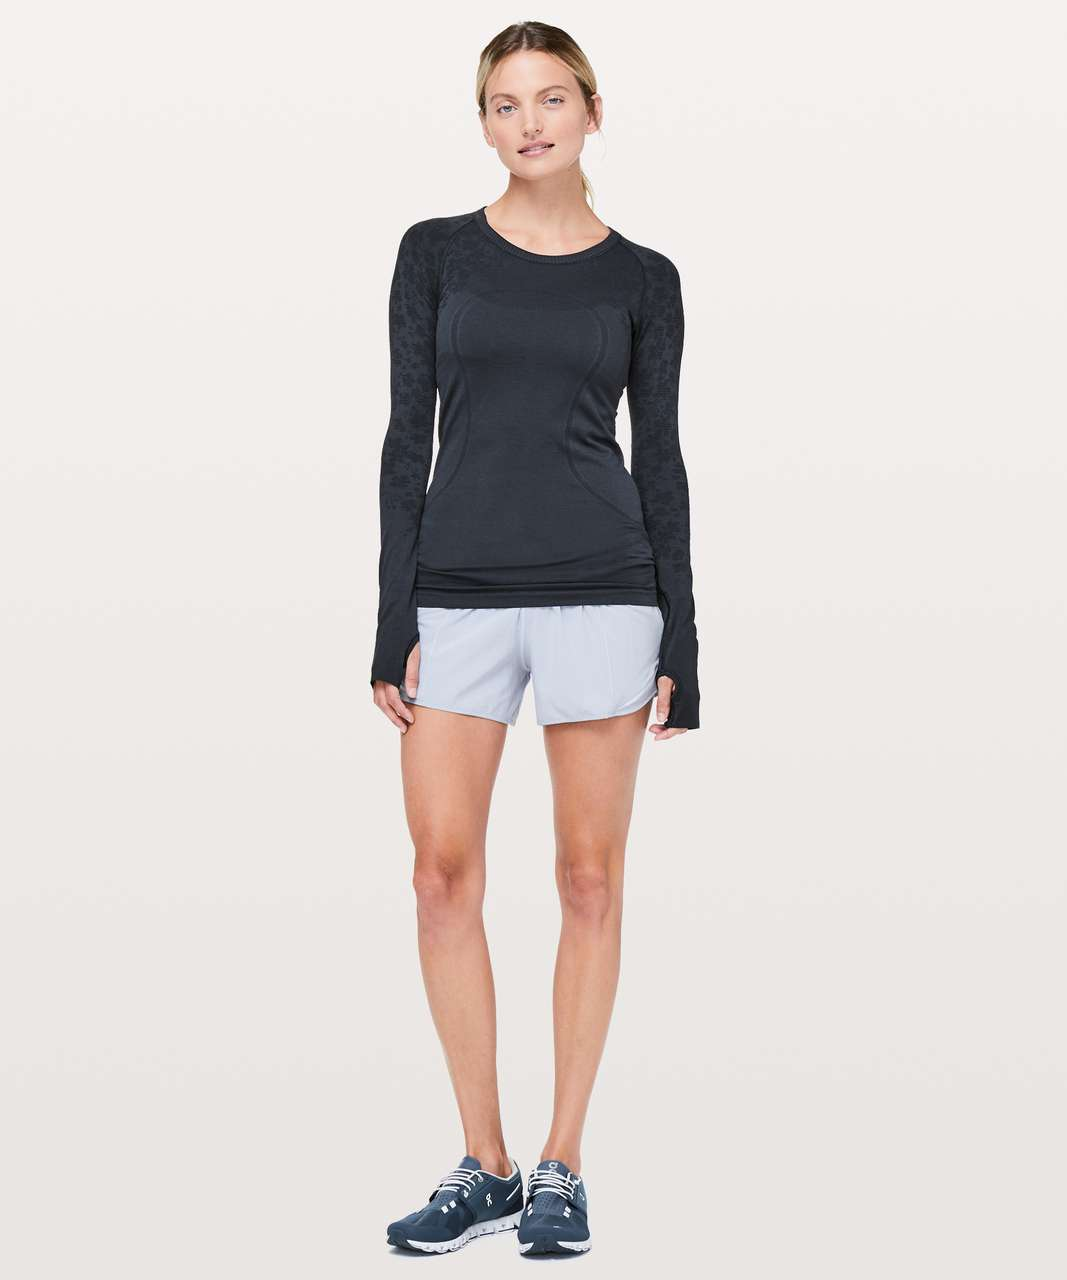 Lululemon Swiftly Tech Long Sleeve Crew - True Navy / Black